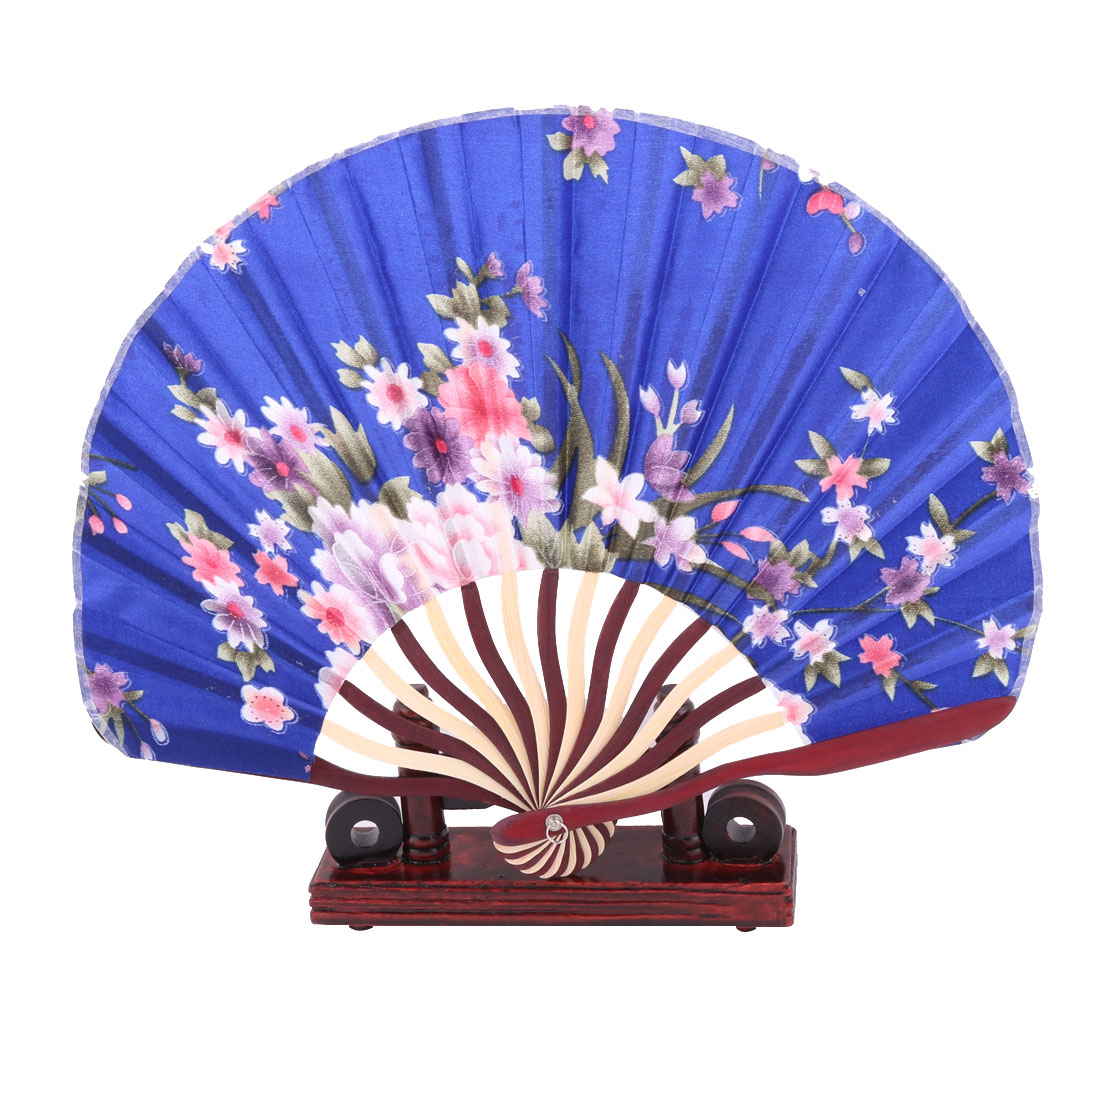 Home Wood Frame Flower Pattern Folding Hand Fan Display Holder Decor Multicolor 2 in 1